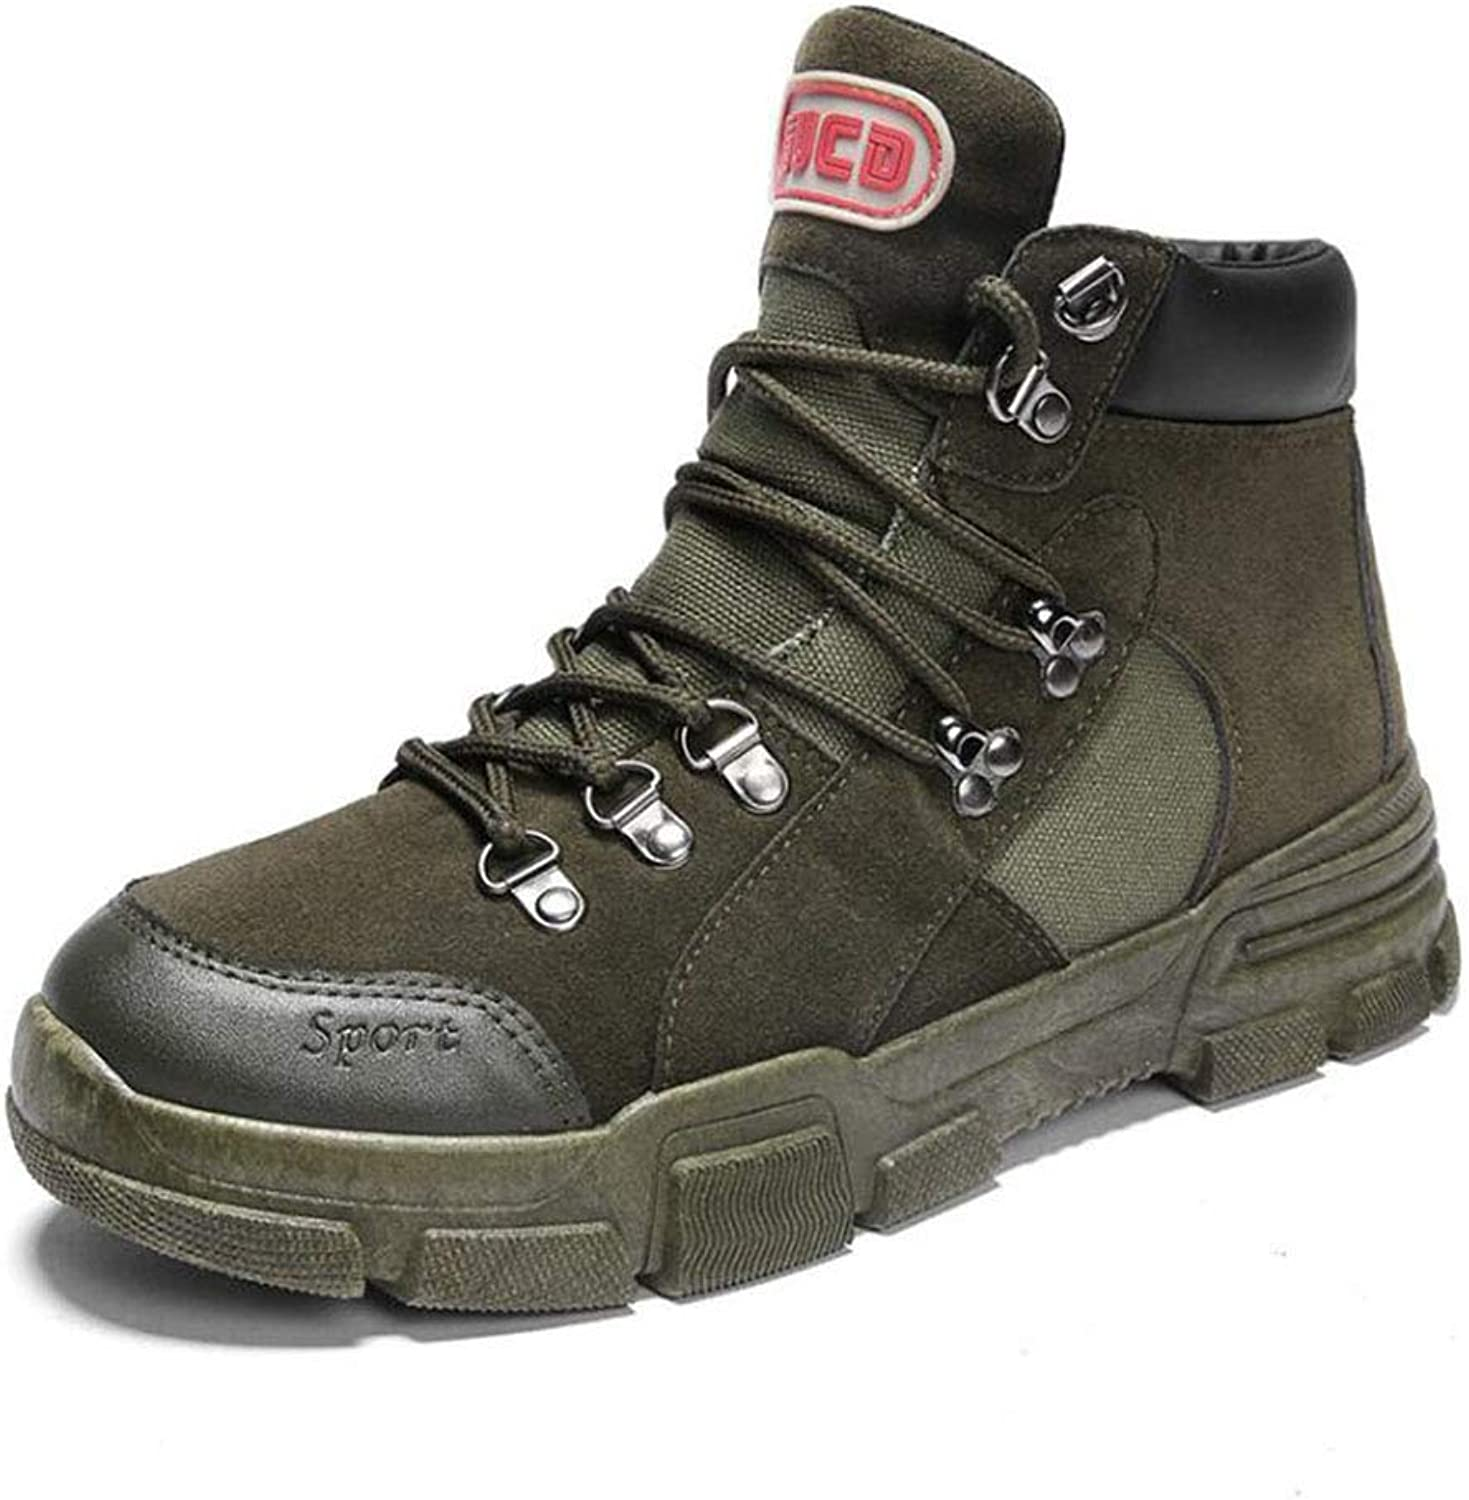 XUE Men's Boots,Winter,Casual Boots,personality Tooling Boots, Outdoor Military Boots,waterproof,Ankle Boots,Retro Hiking shoes,Desert Warfare (color   A, Size   40)